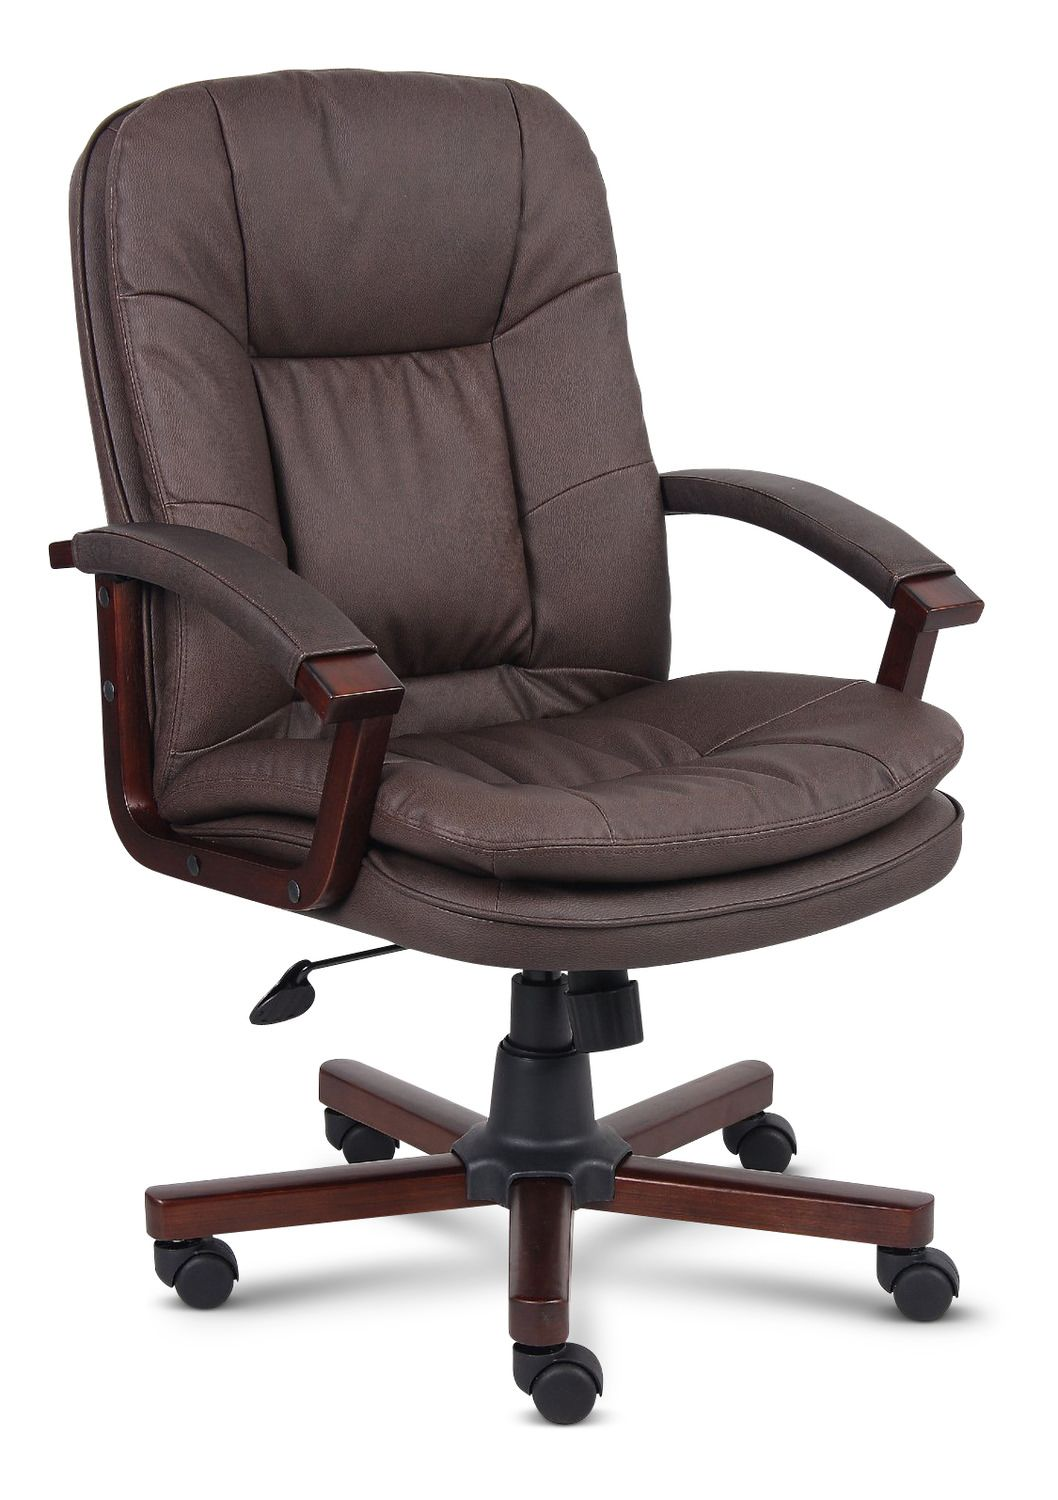 Office Depot Chair Brown Bomber Leather Office Chair Office Spaces Chair